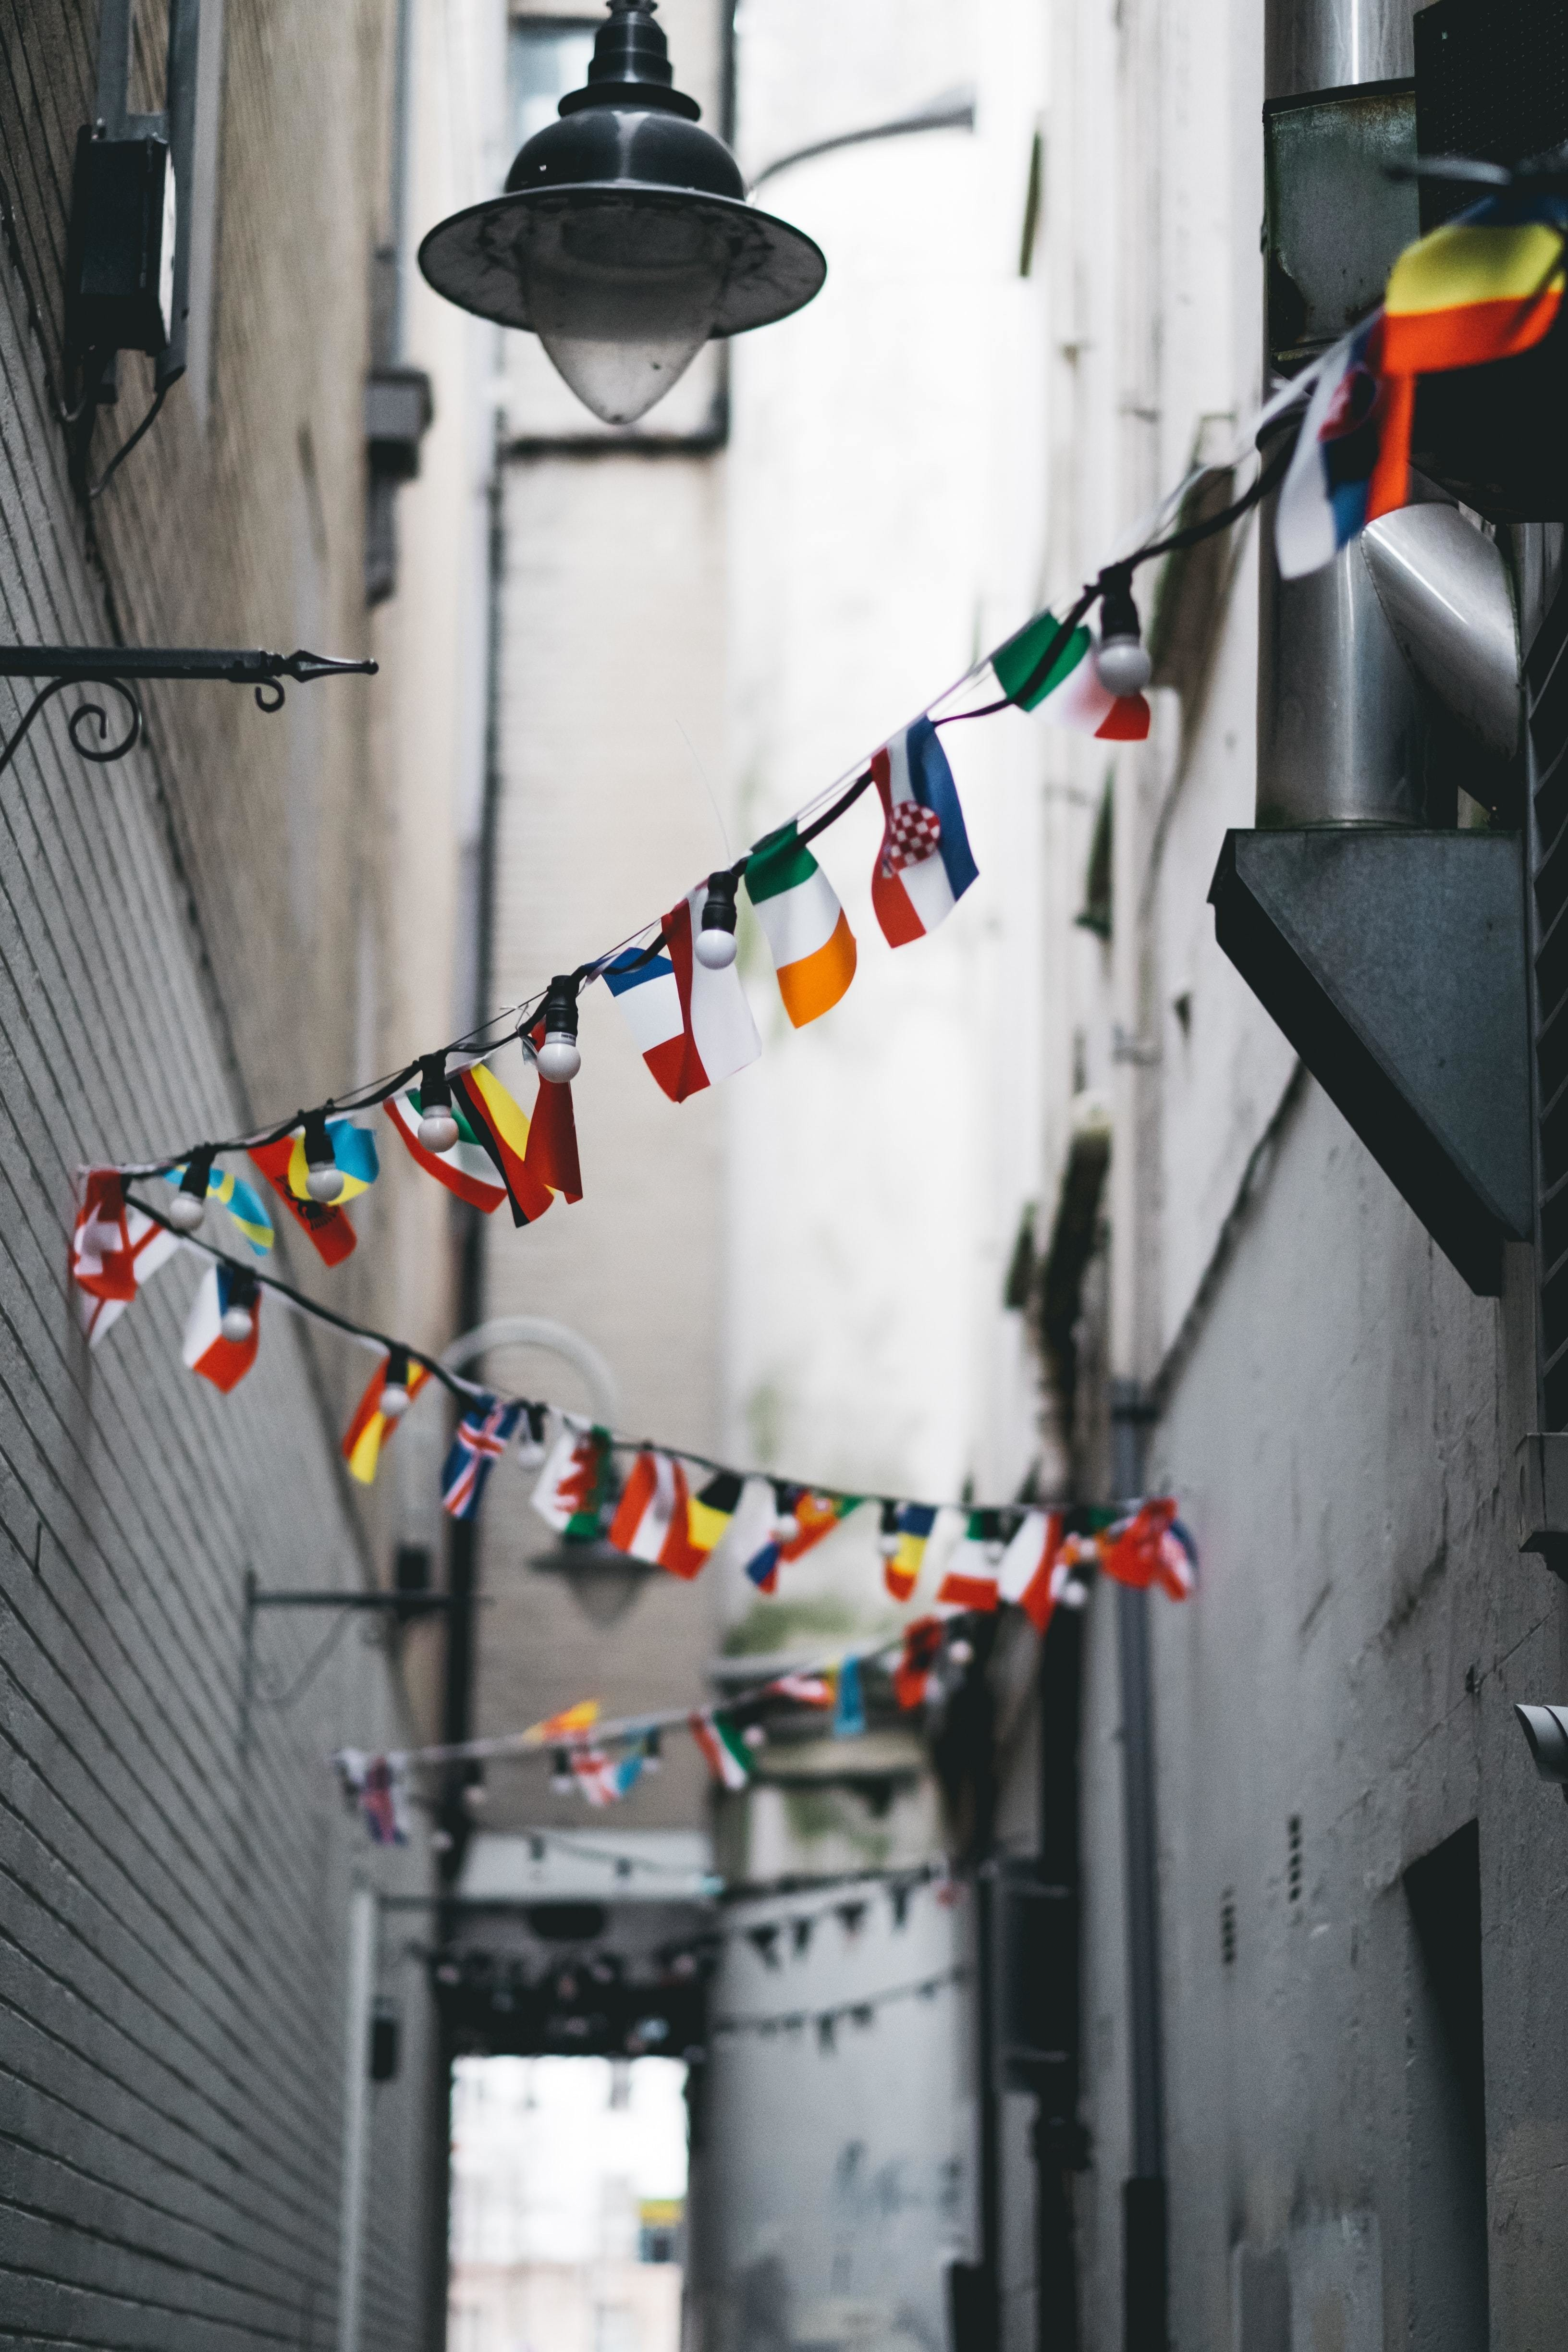 bunting hanging in an alleyway with different country flags